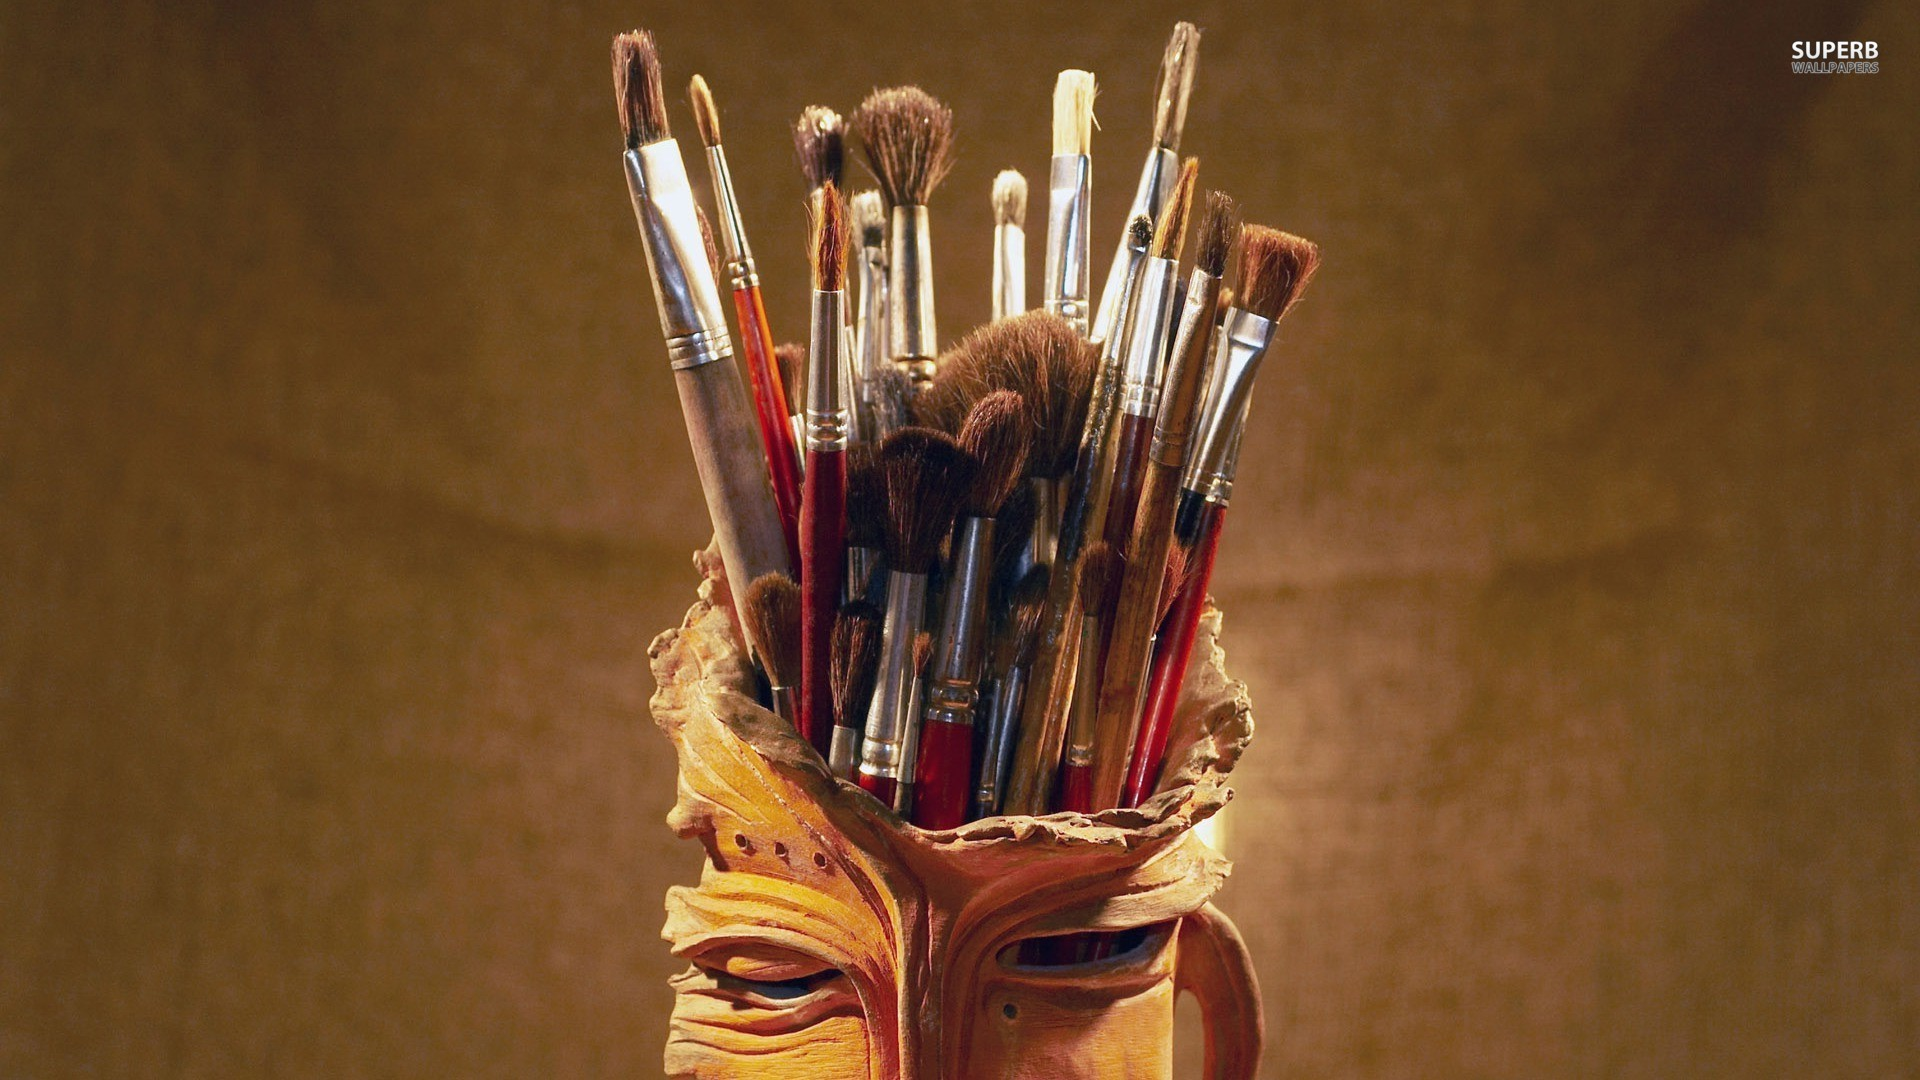 artists-brushes-25236-1920x1080